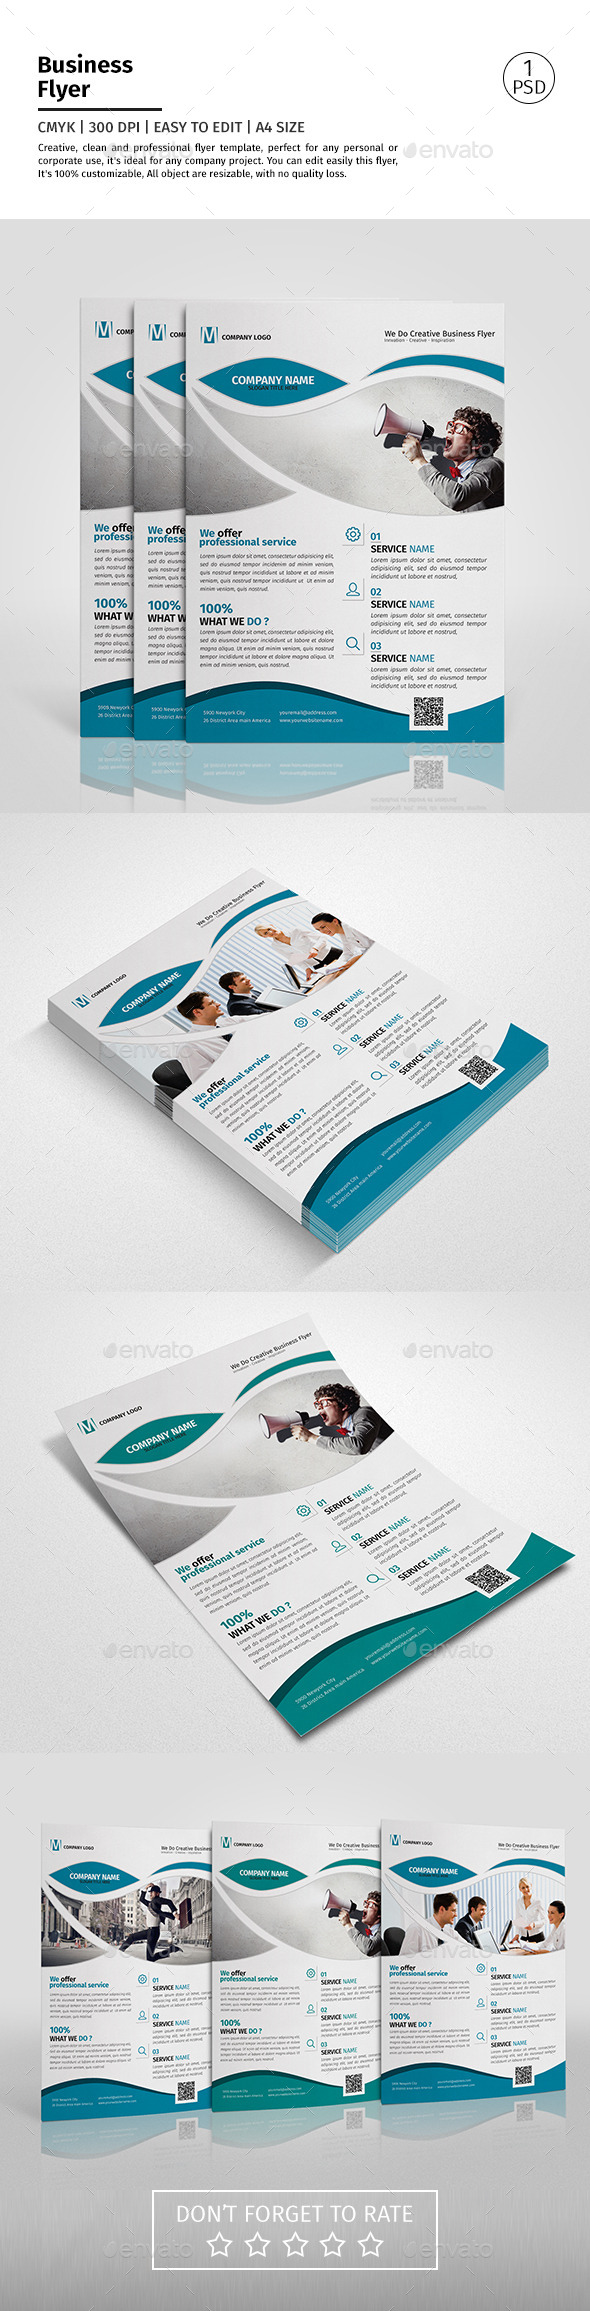 A4 Corporate Business Flyer Template Vol 09